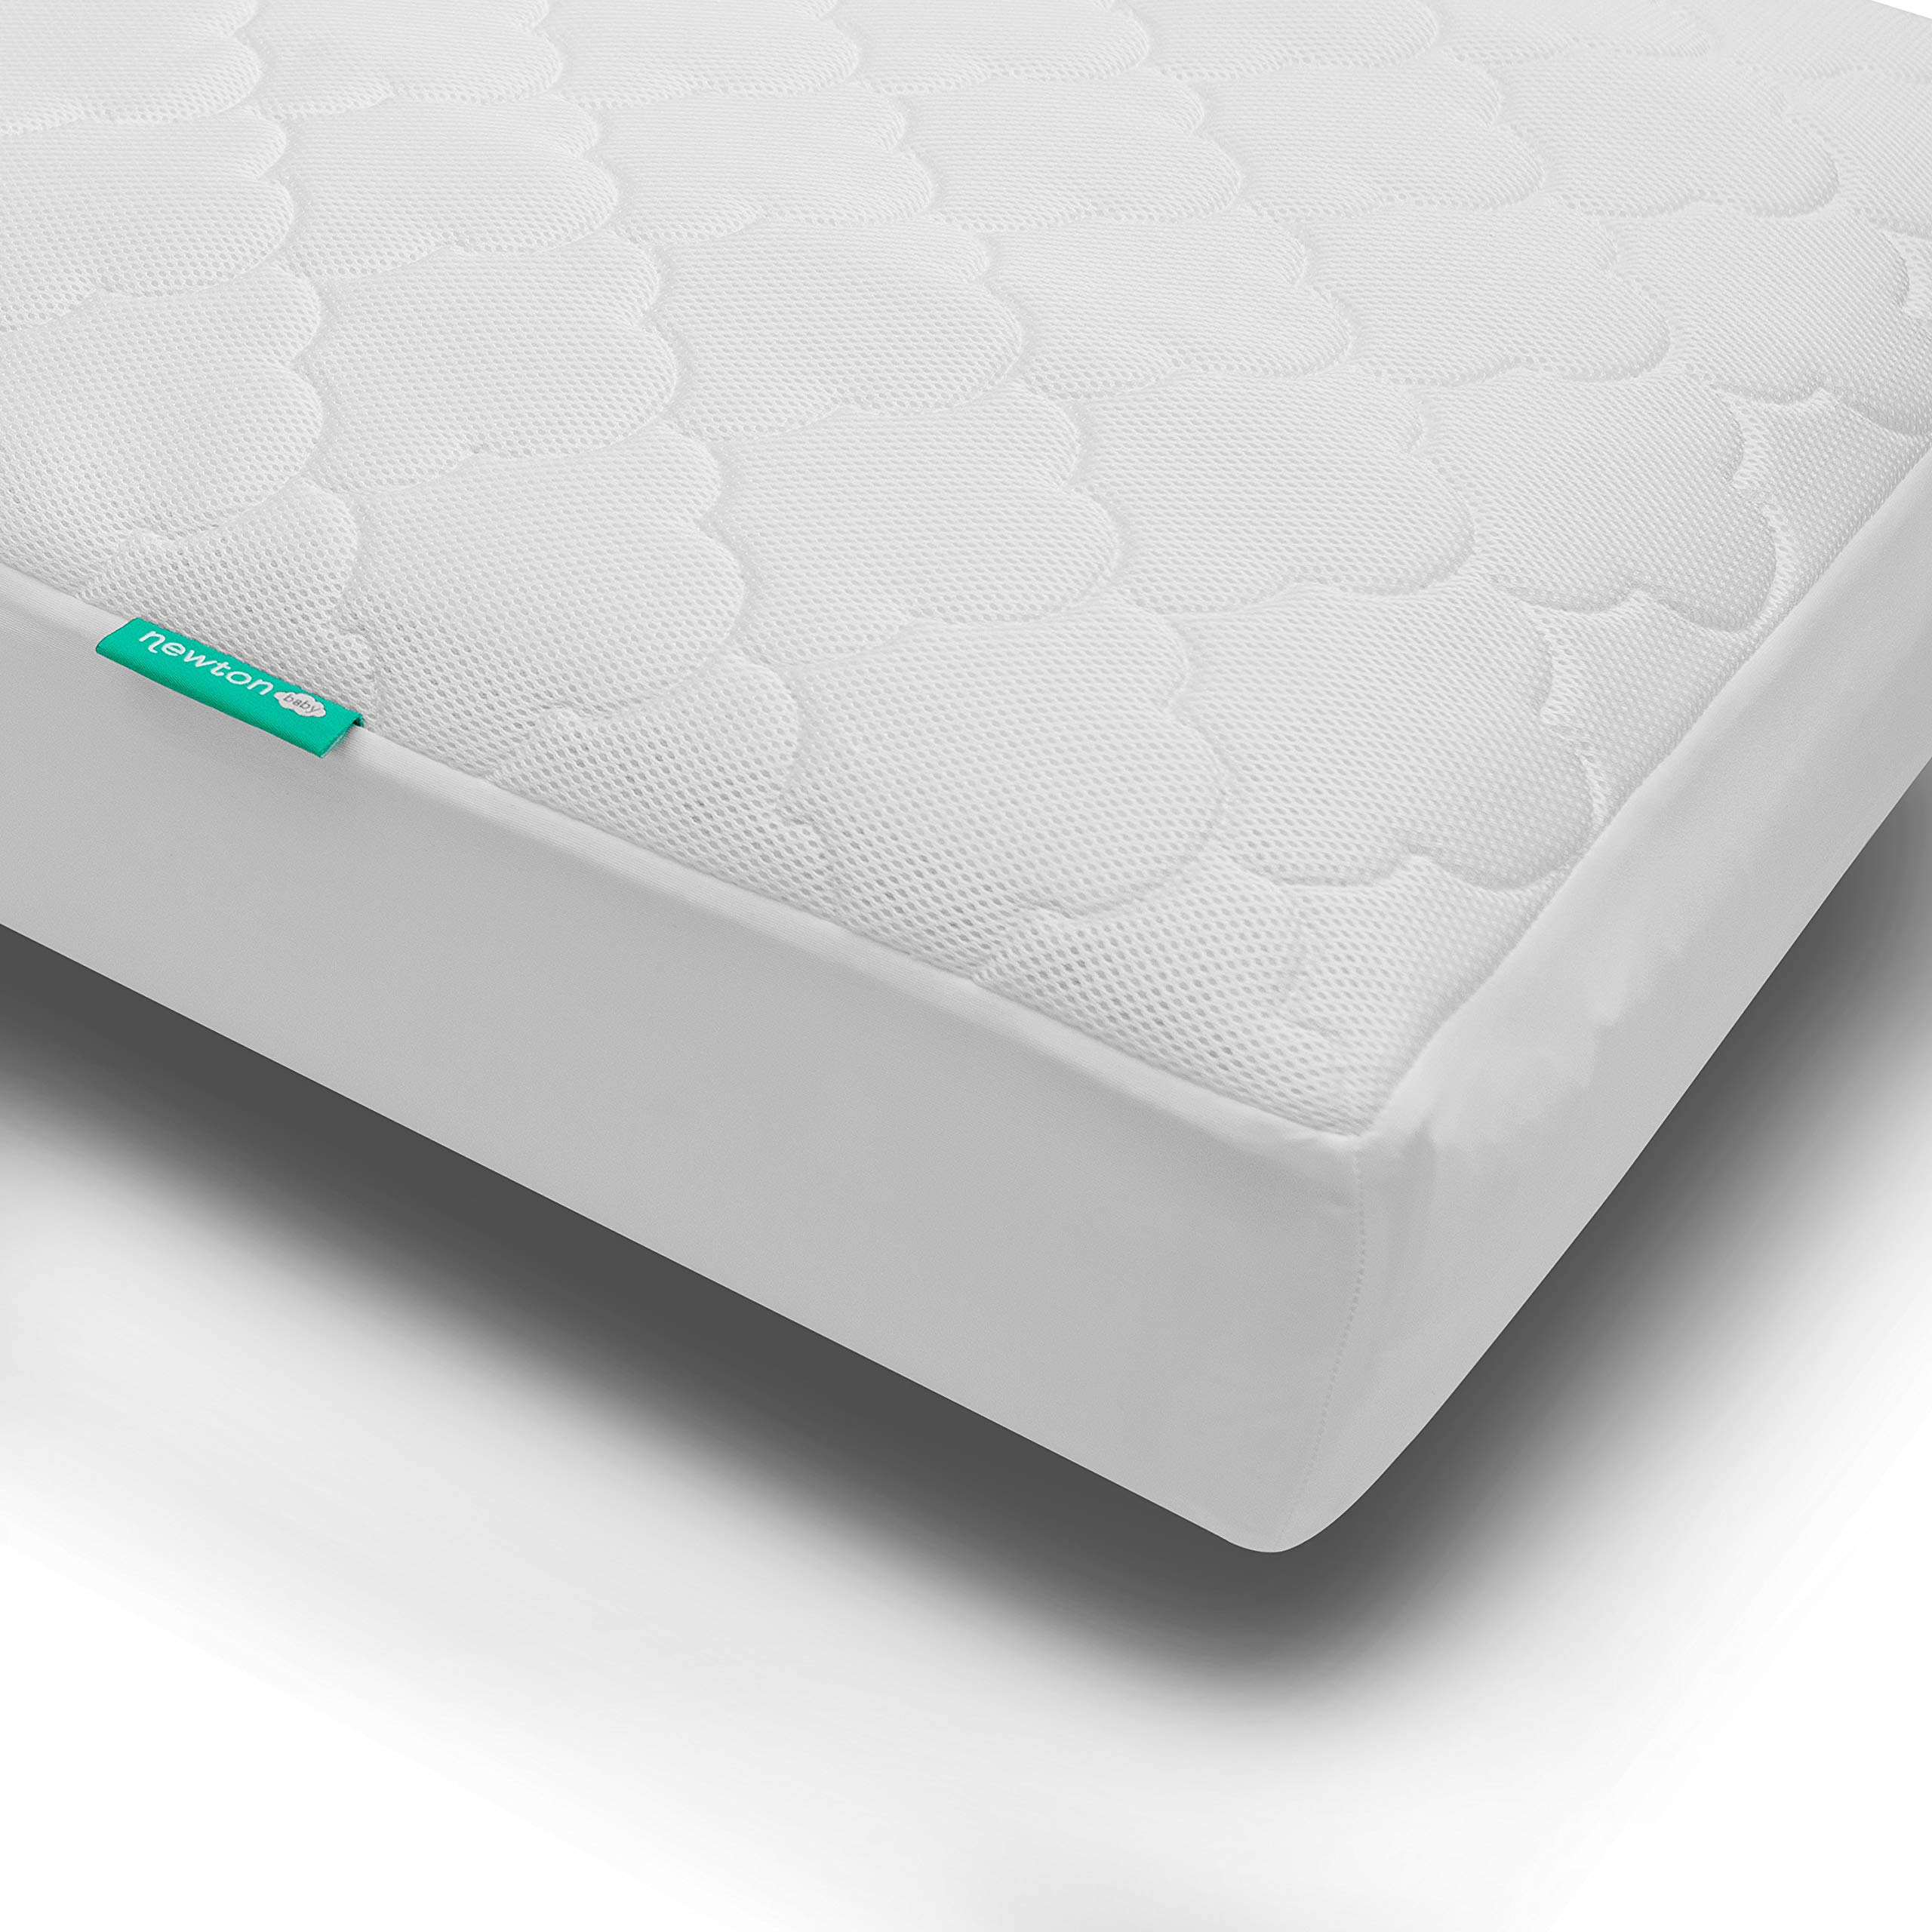 Newton Baby Waterproof Crib Mattress Pad   100% Breathable Proven to Reduce Suffocation Risk, Universal Fit, 100% Washable, Hypoallergenic, Non-Toxic by Newton